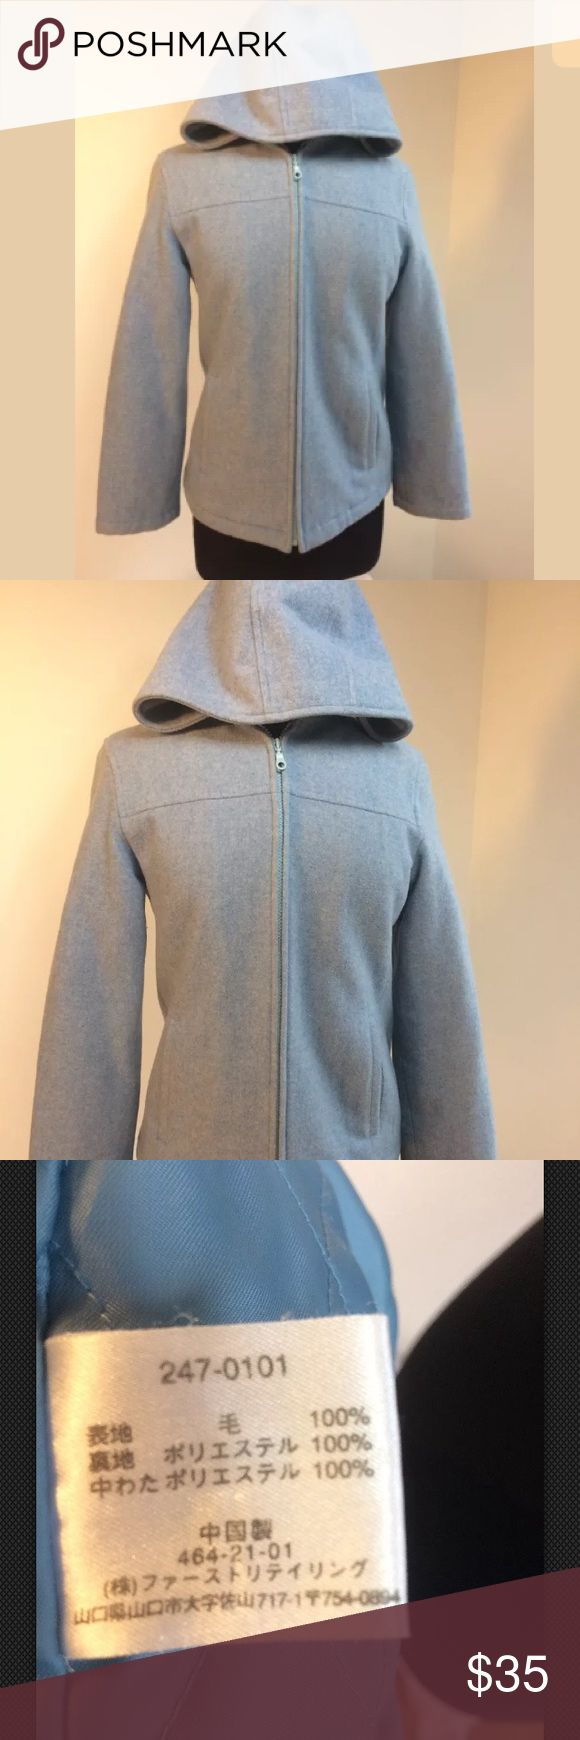 """Uniqlo Coat Blue M wool duffle jacket hooded Mint condition. 19"""" across the chest. 23.5"""" long from shoulder to hem.  Outer fabric 100% wool, lining 100% poly, inner fill 100 % poly Inside has quilted lining, including in the Sleeves. Outer Material is thick and warm. Uniqlo Jackets & Coats"""